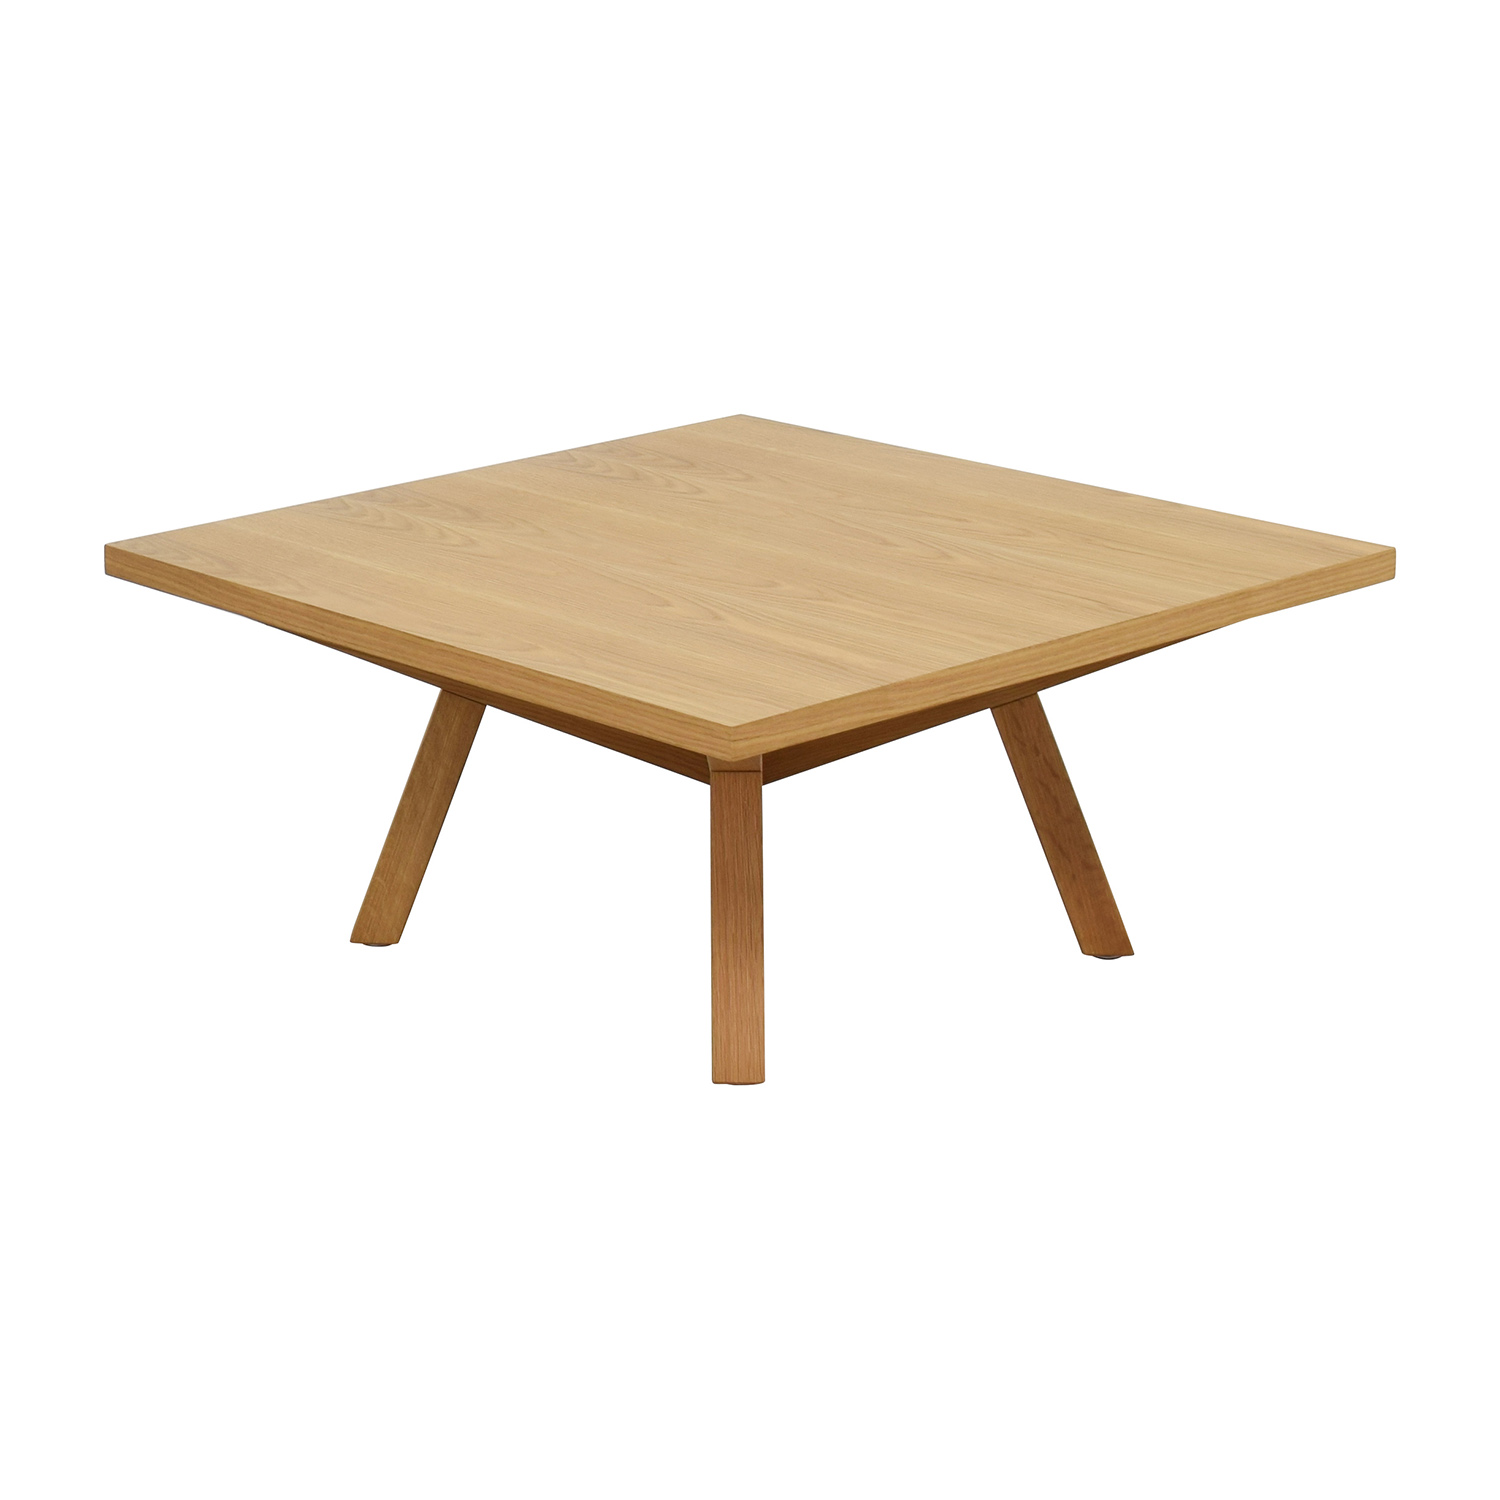 79 Off Inmod Inmod Sean Dix Forte Square Dining Table Tables